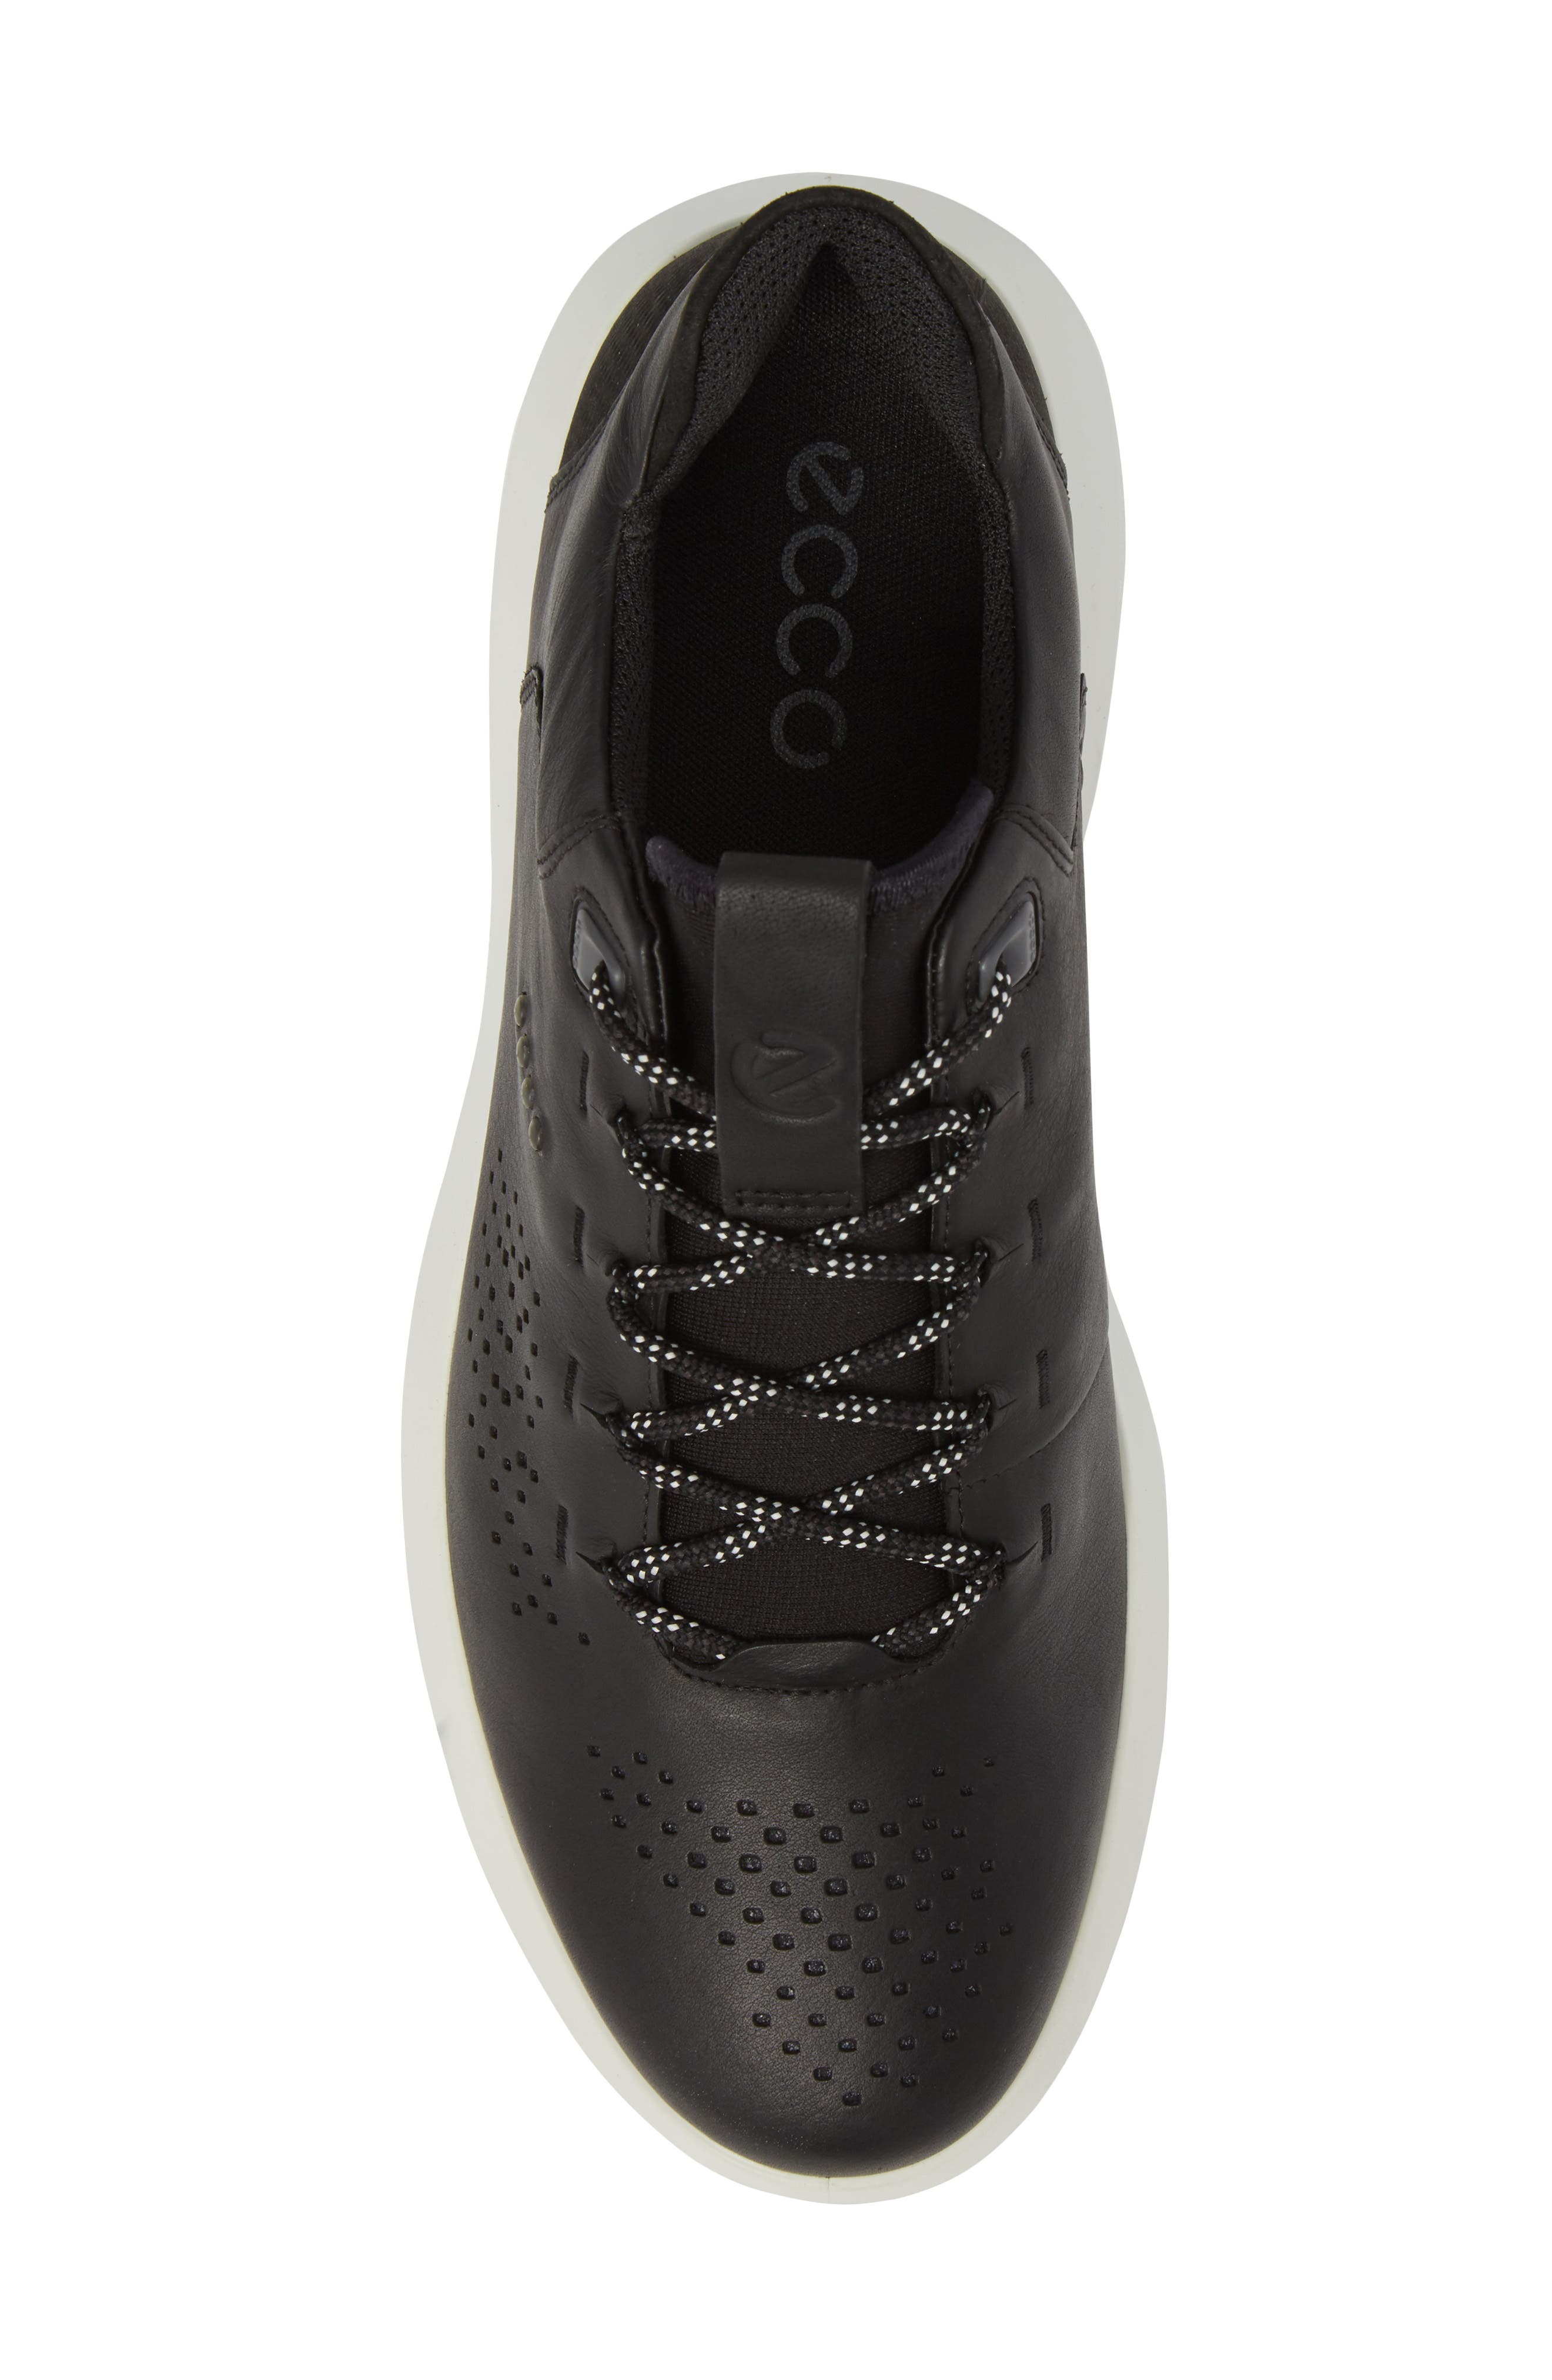 Scinapse Sneaker,                             Alternate thumbnail 5, color,                             BLACK LEATHER